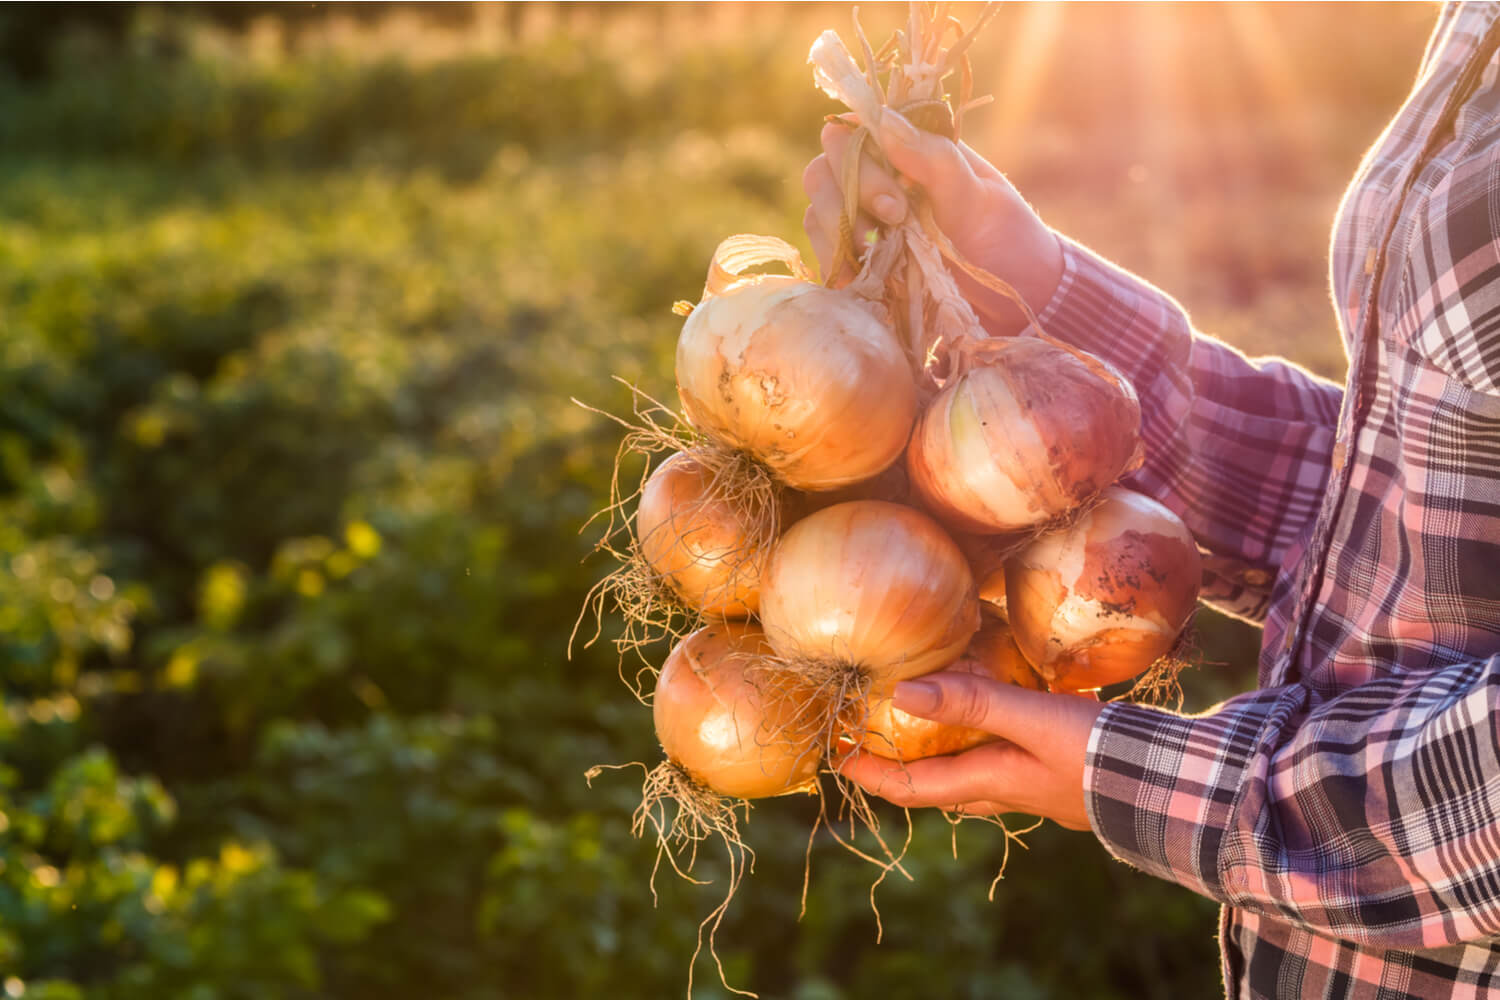 woman holding bunch of onions